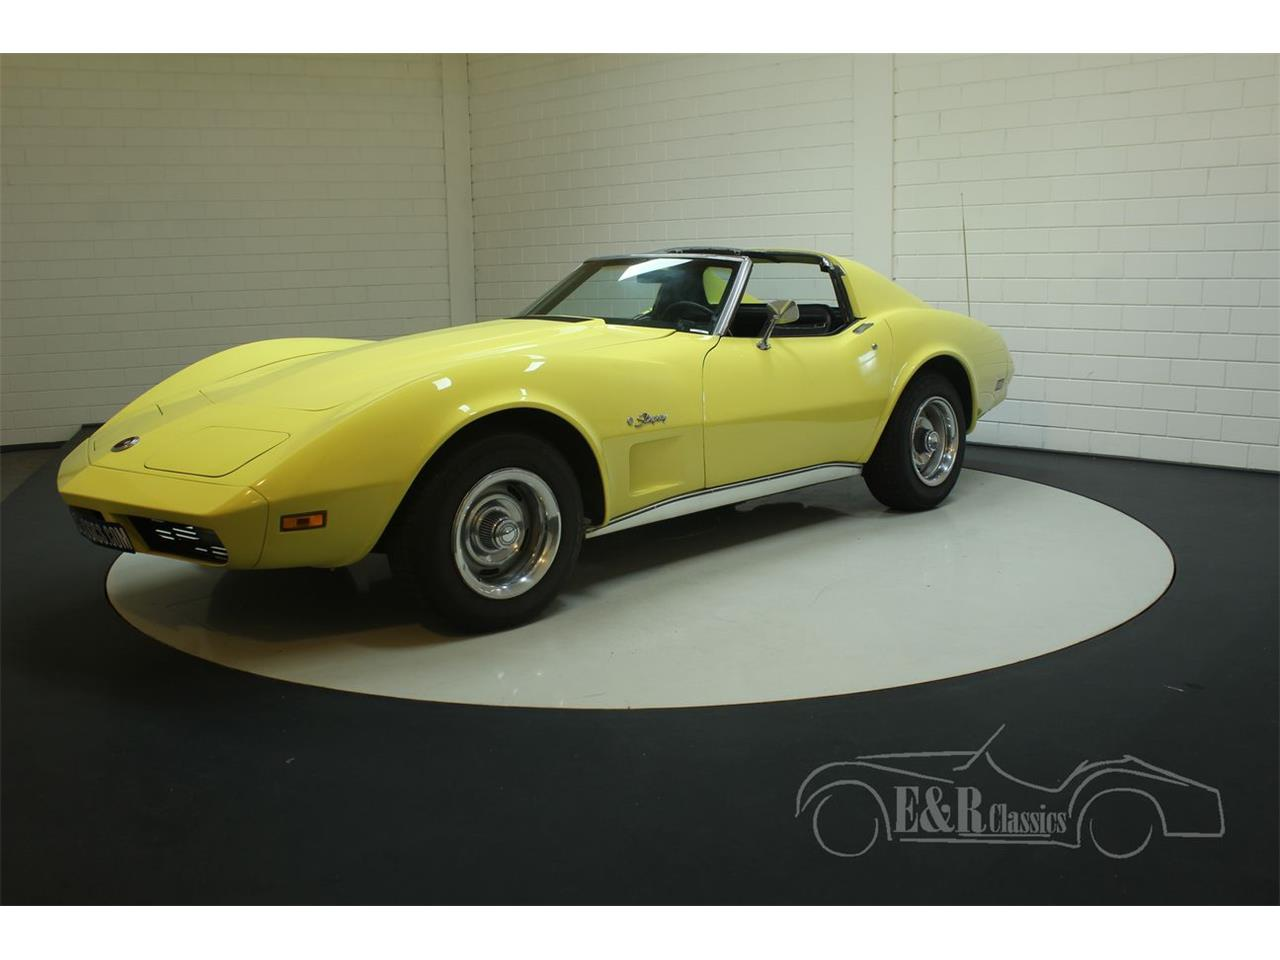 Large Picture of 1974 Chevrolet Corvette located in noord brabant - $34,292.00 - PFBT